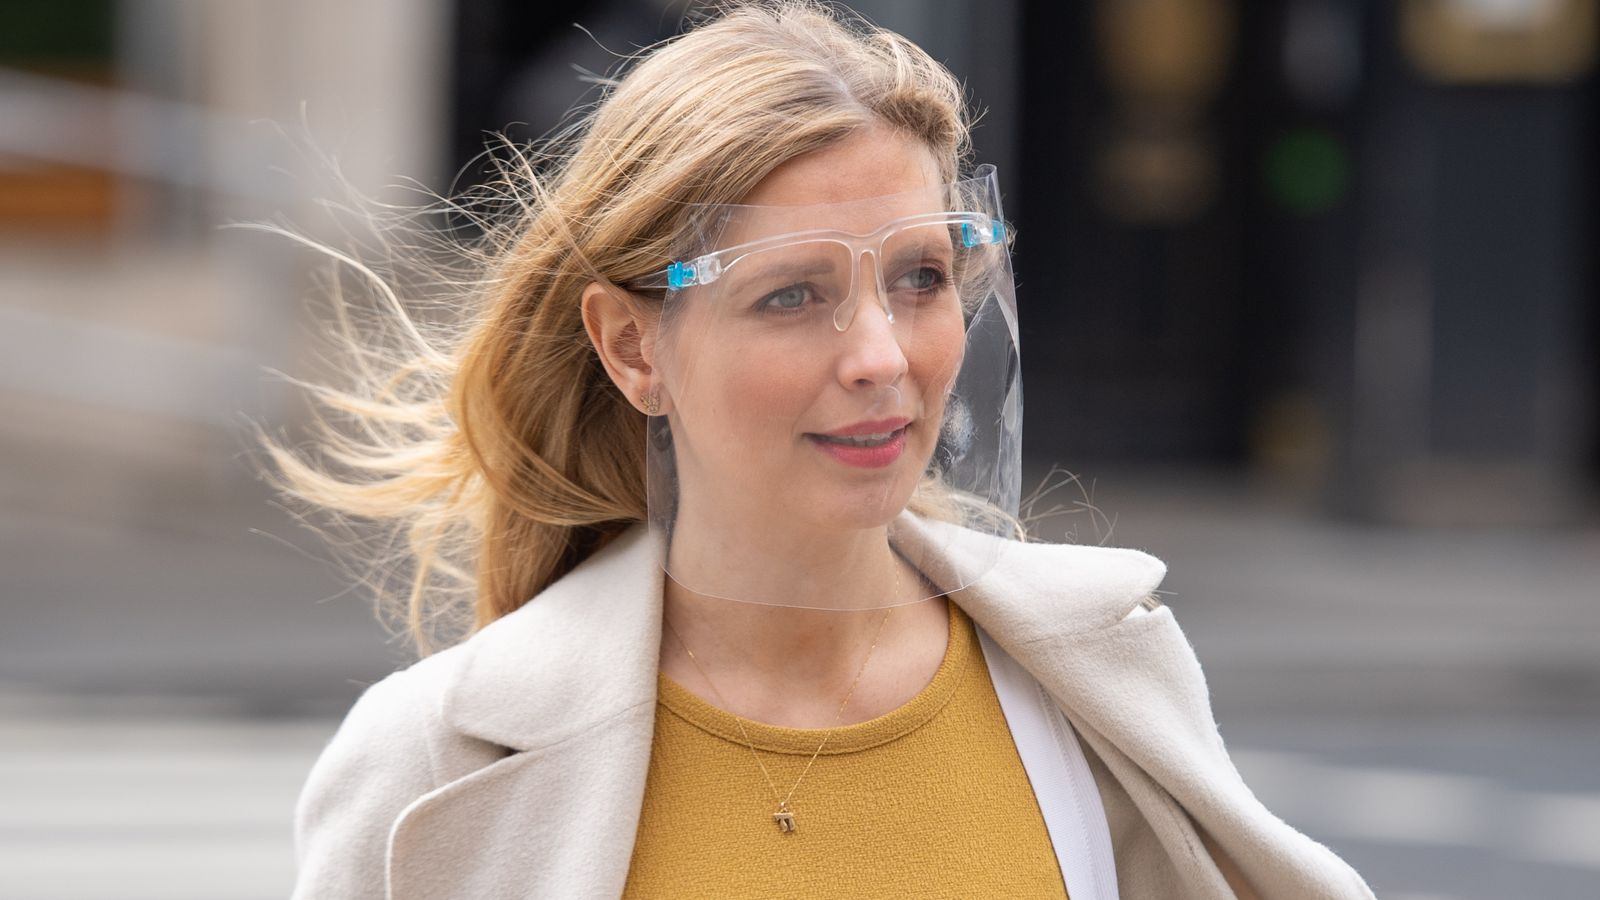 Countdown star Rachel Riley loses latest round of libel battle